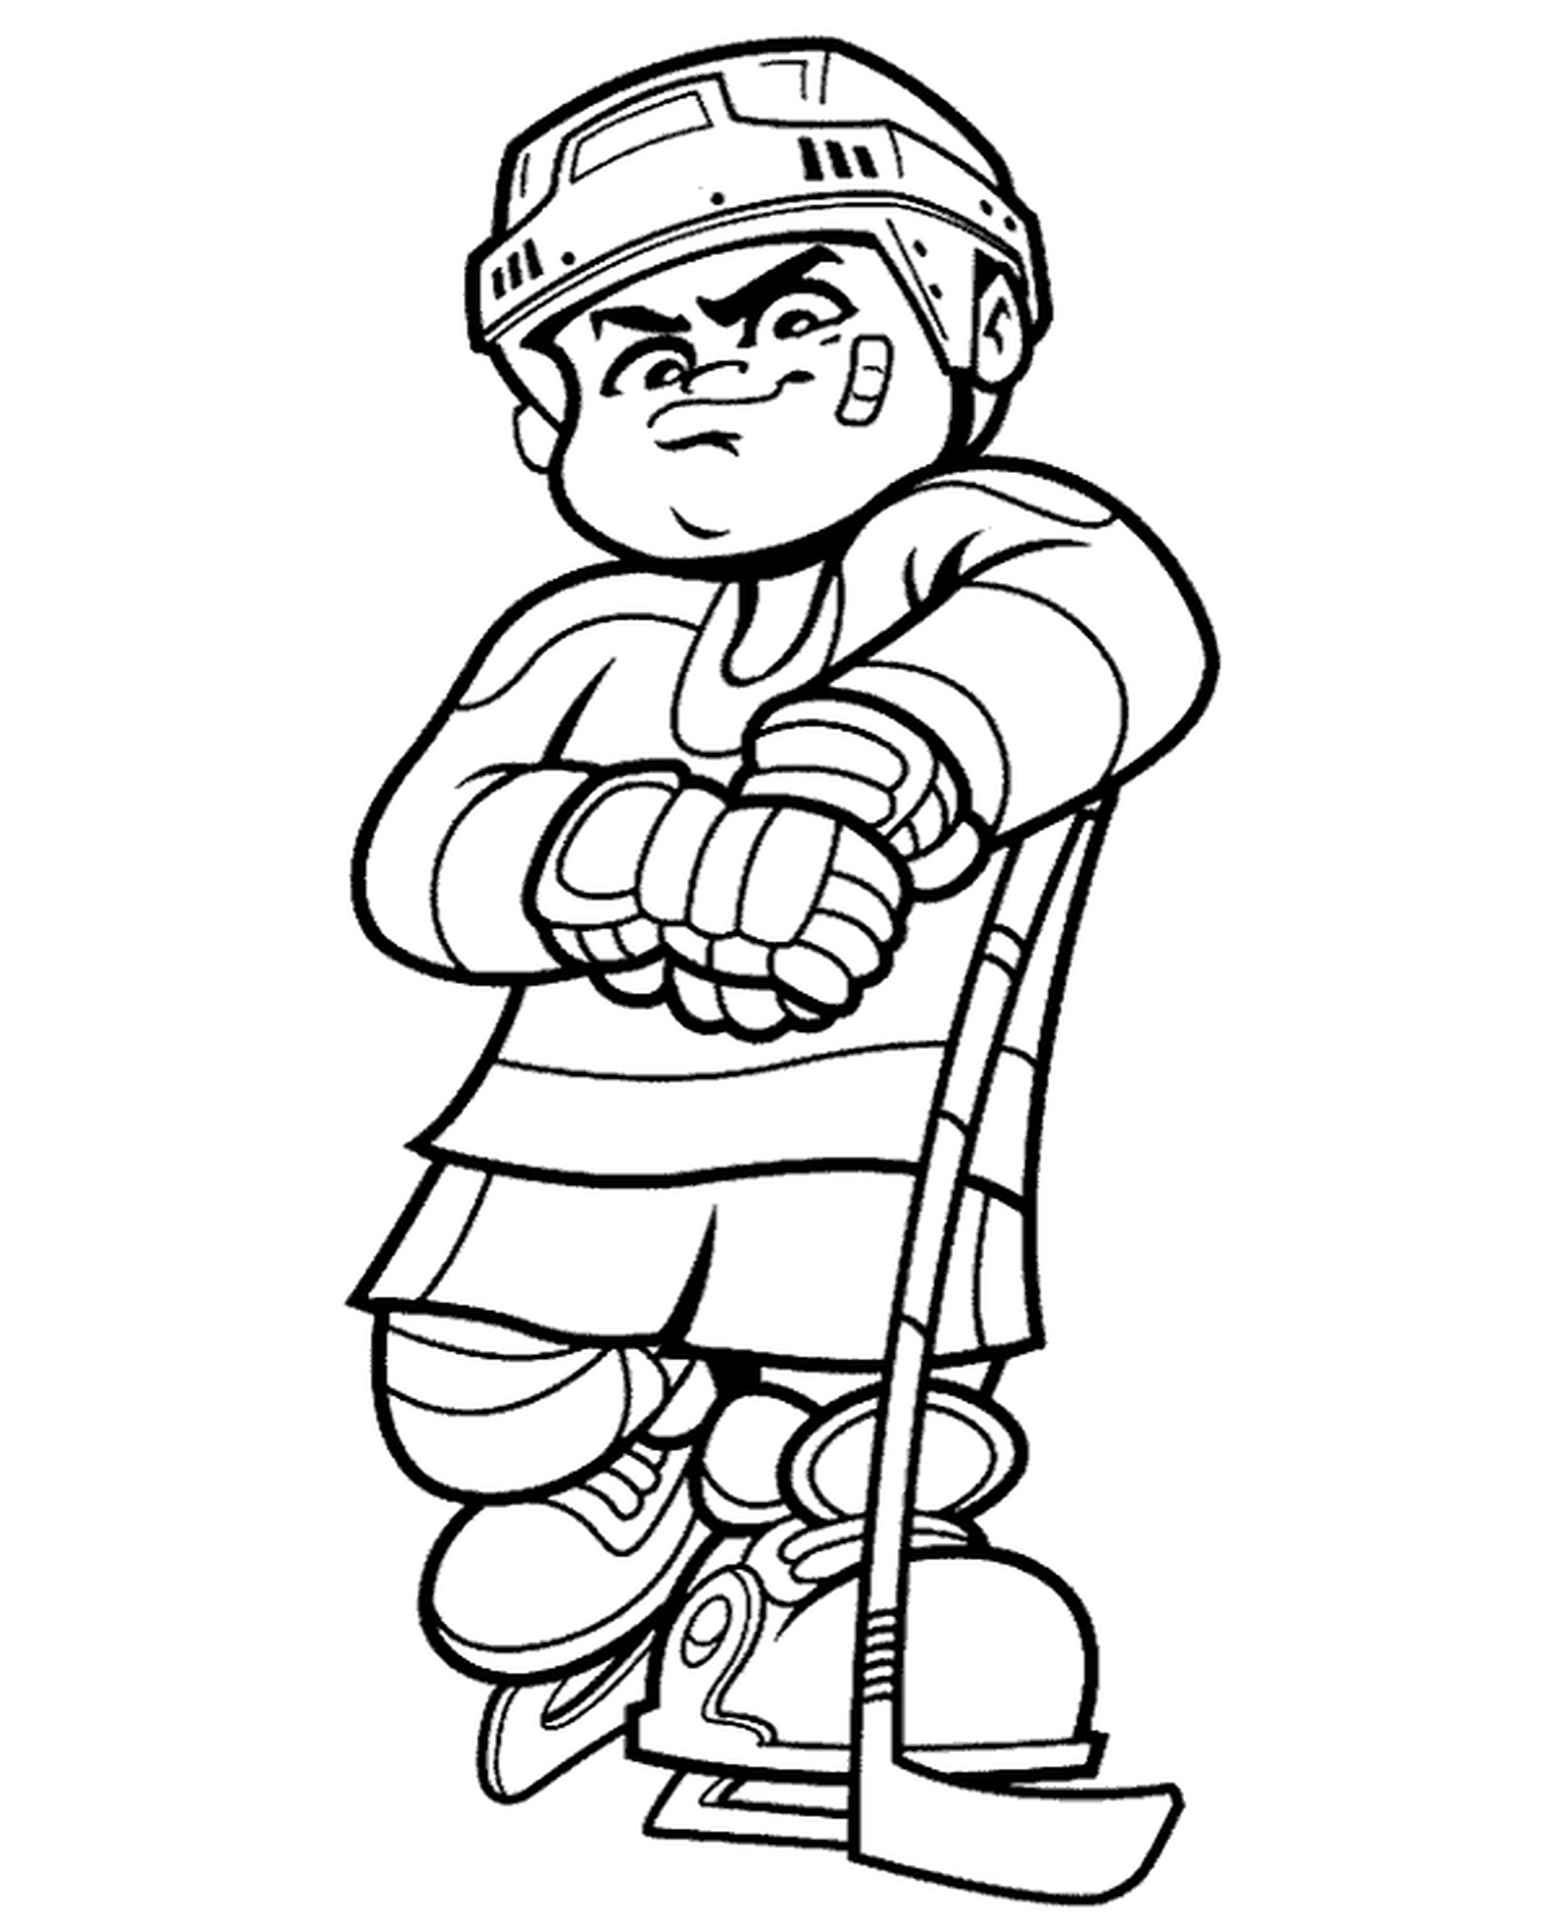 Hockey Player Free Coloring Page